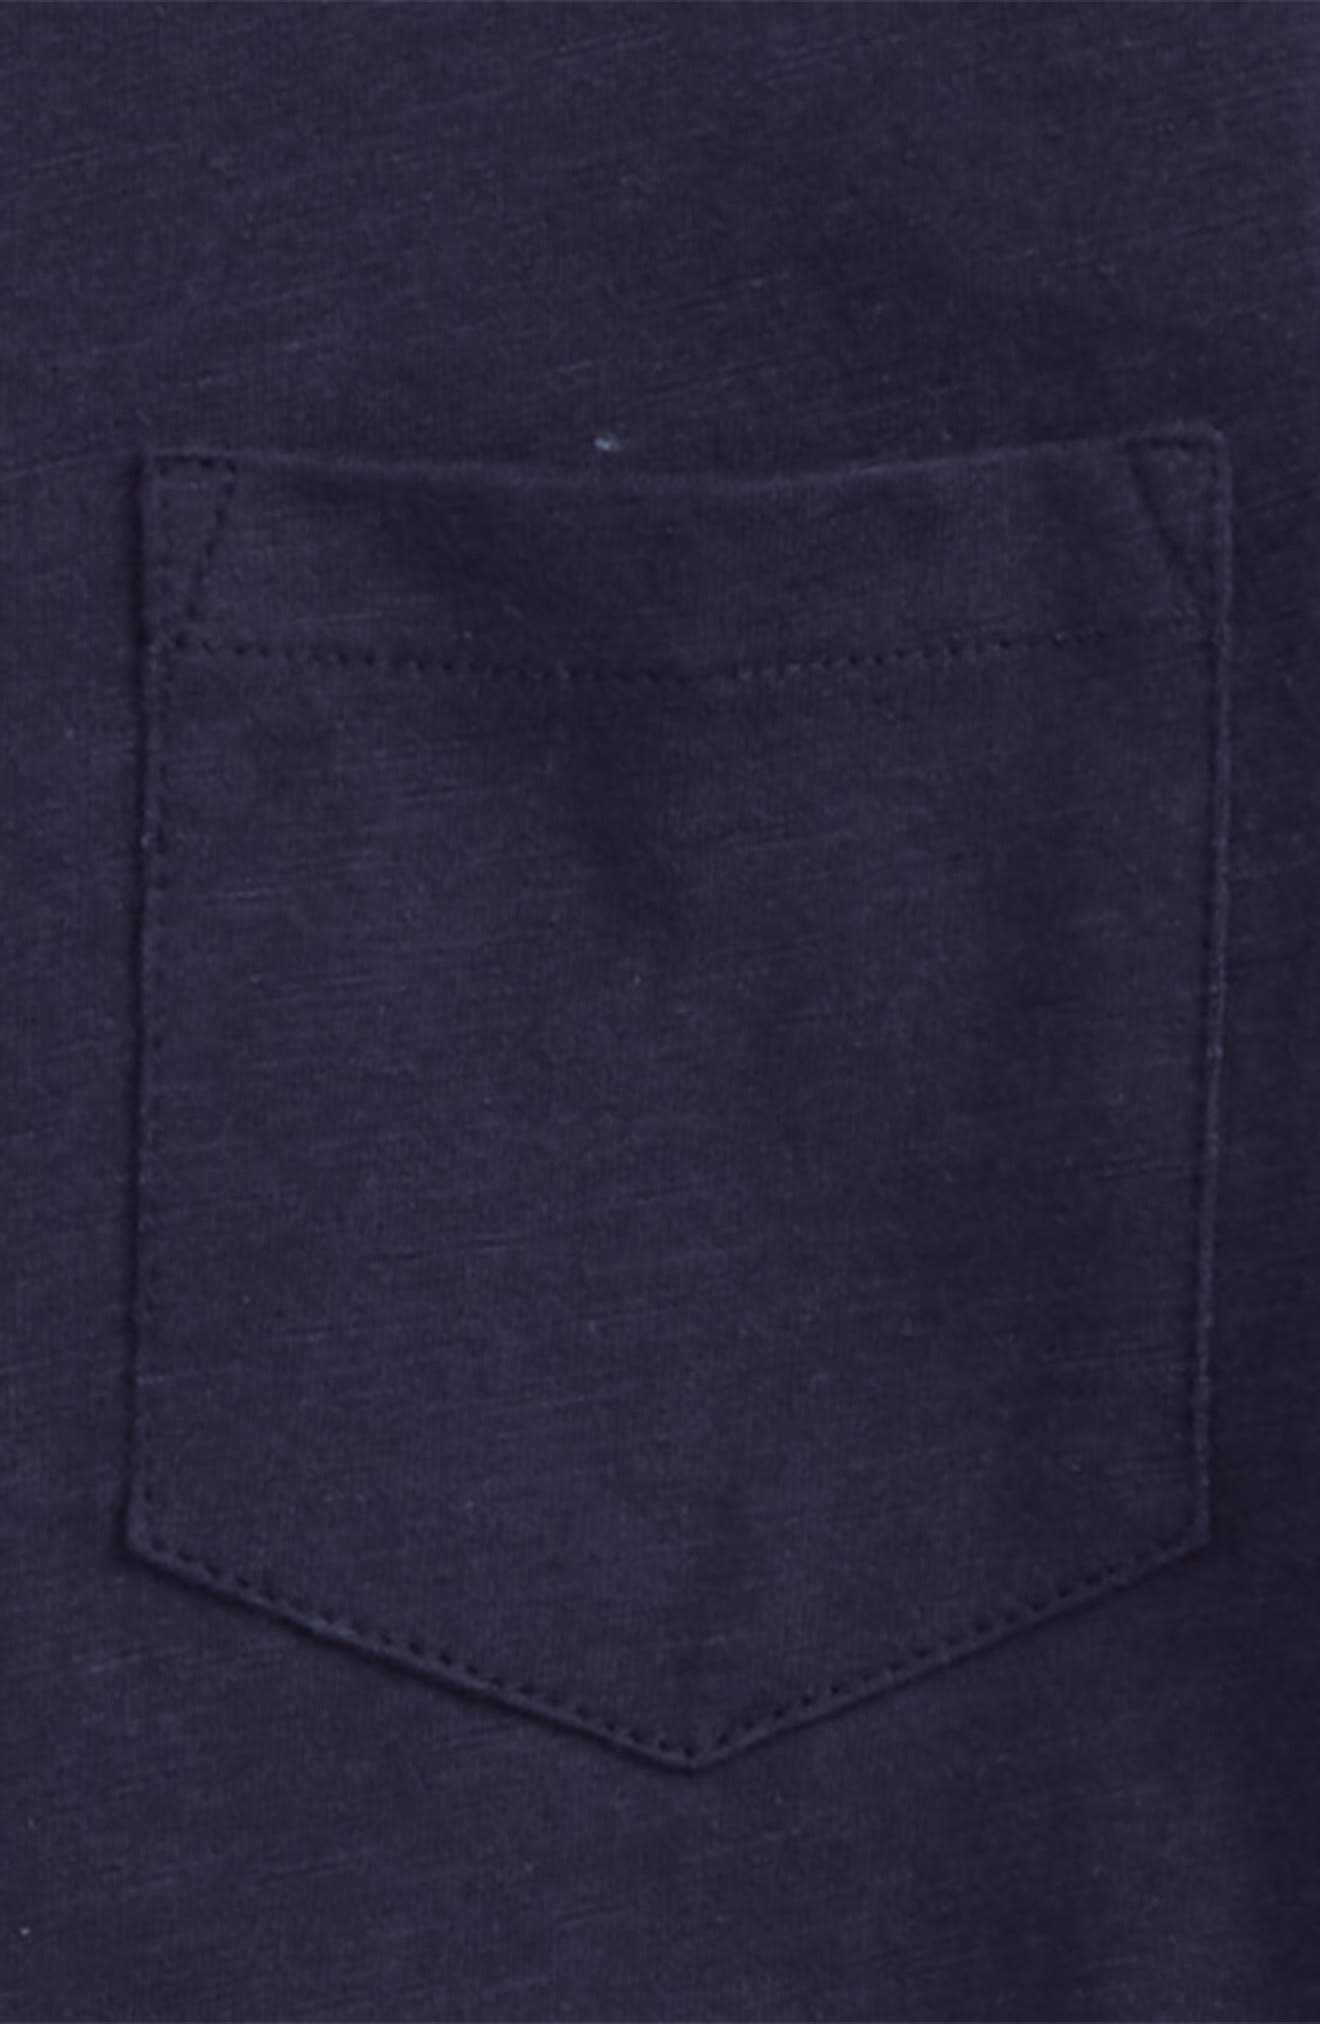 Pocket T-Shirt,                             Alternate thumbnail 2, color,                             Navy